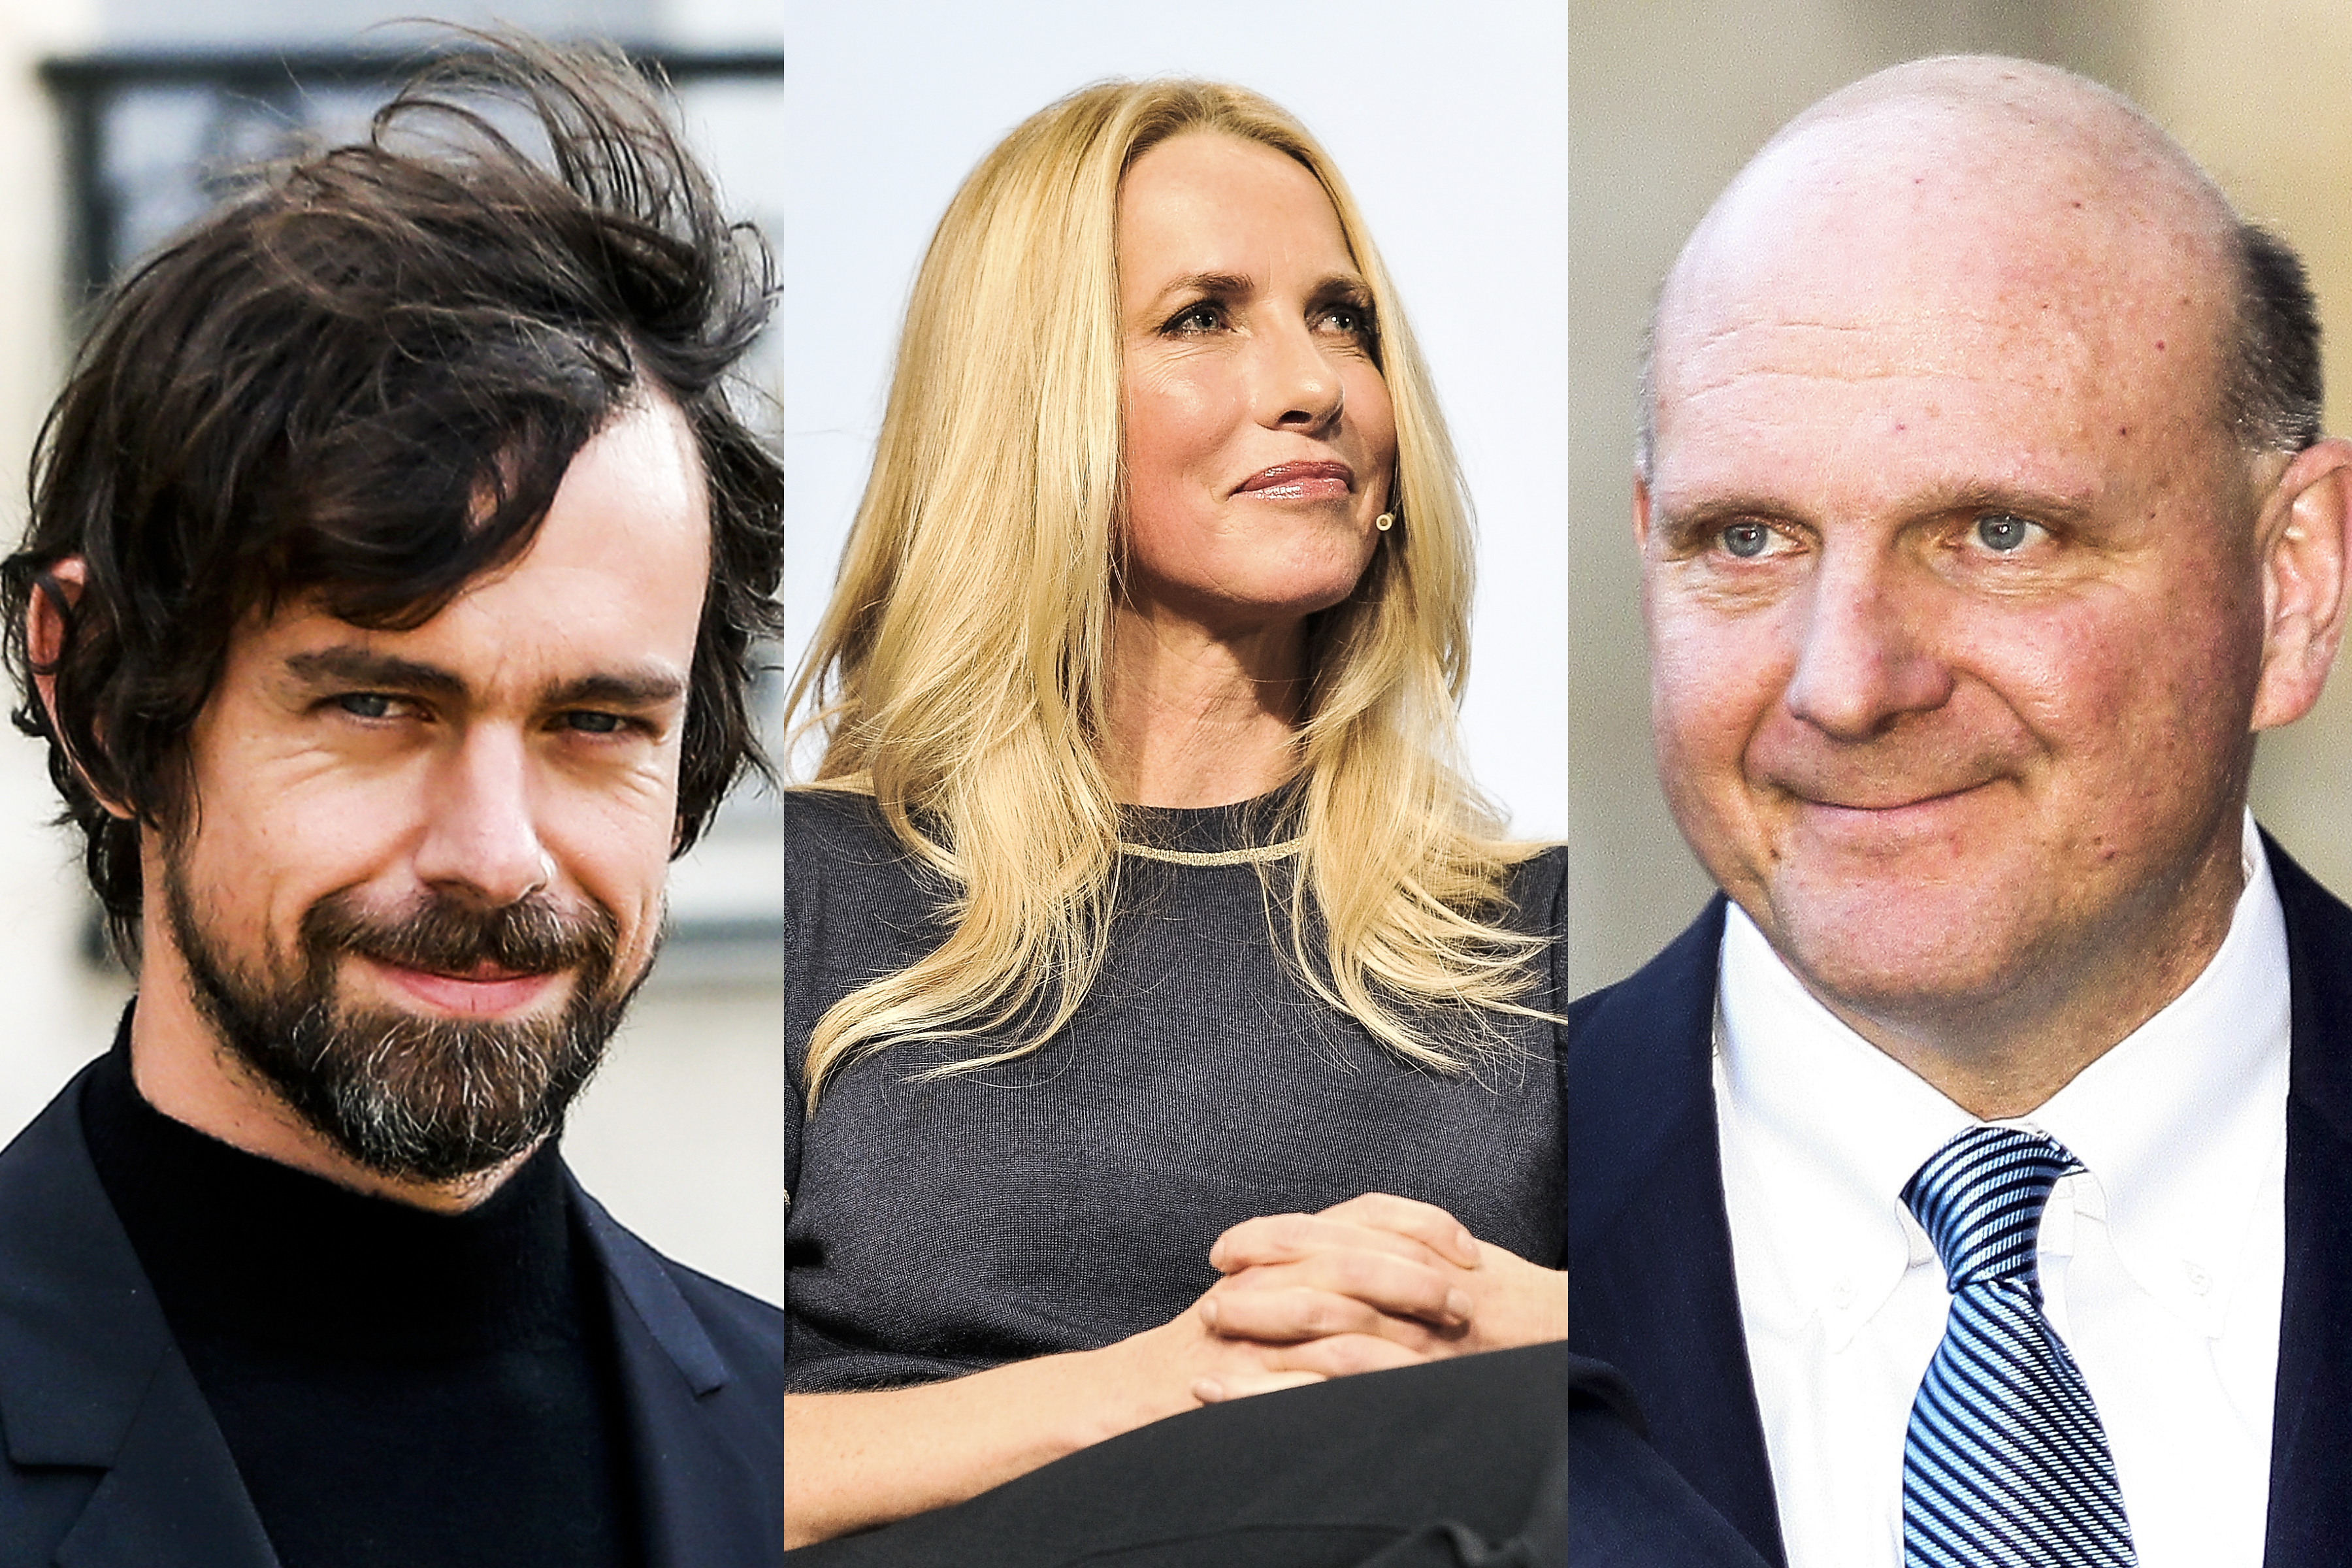 Images of Jack Dorsey, Laurene Powell Jobs, and Steve Ballmer.